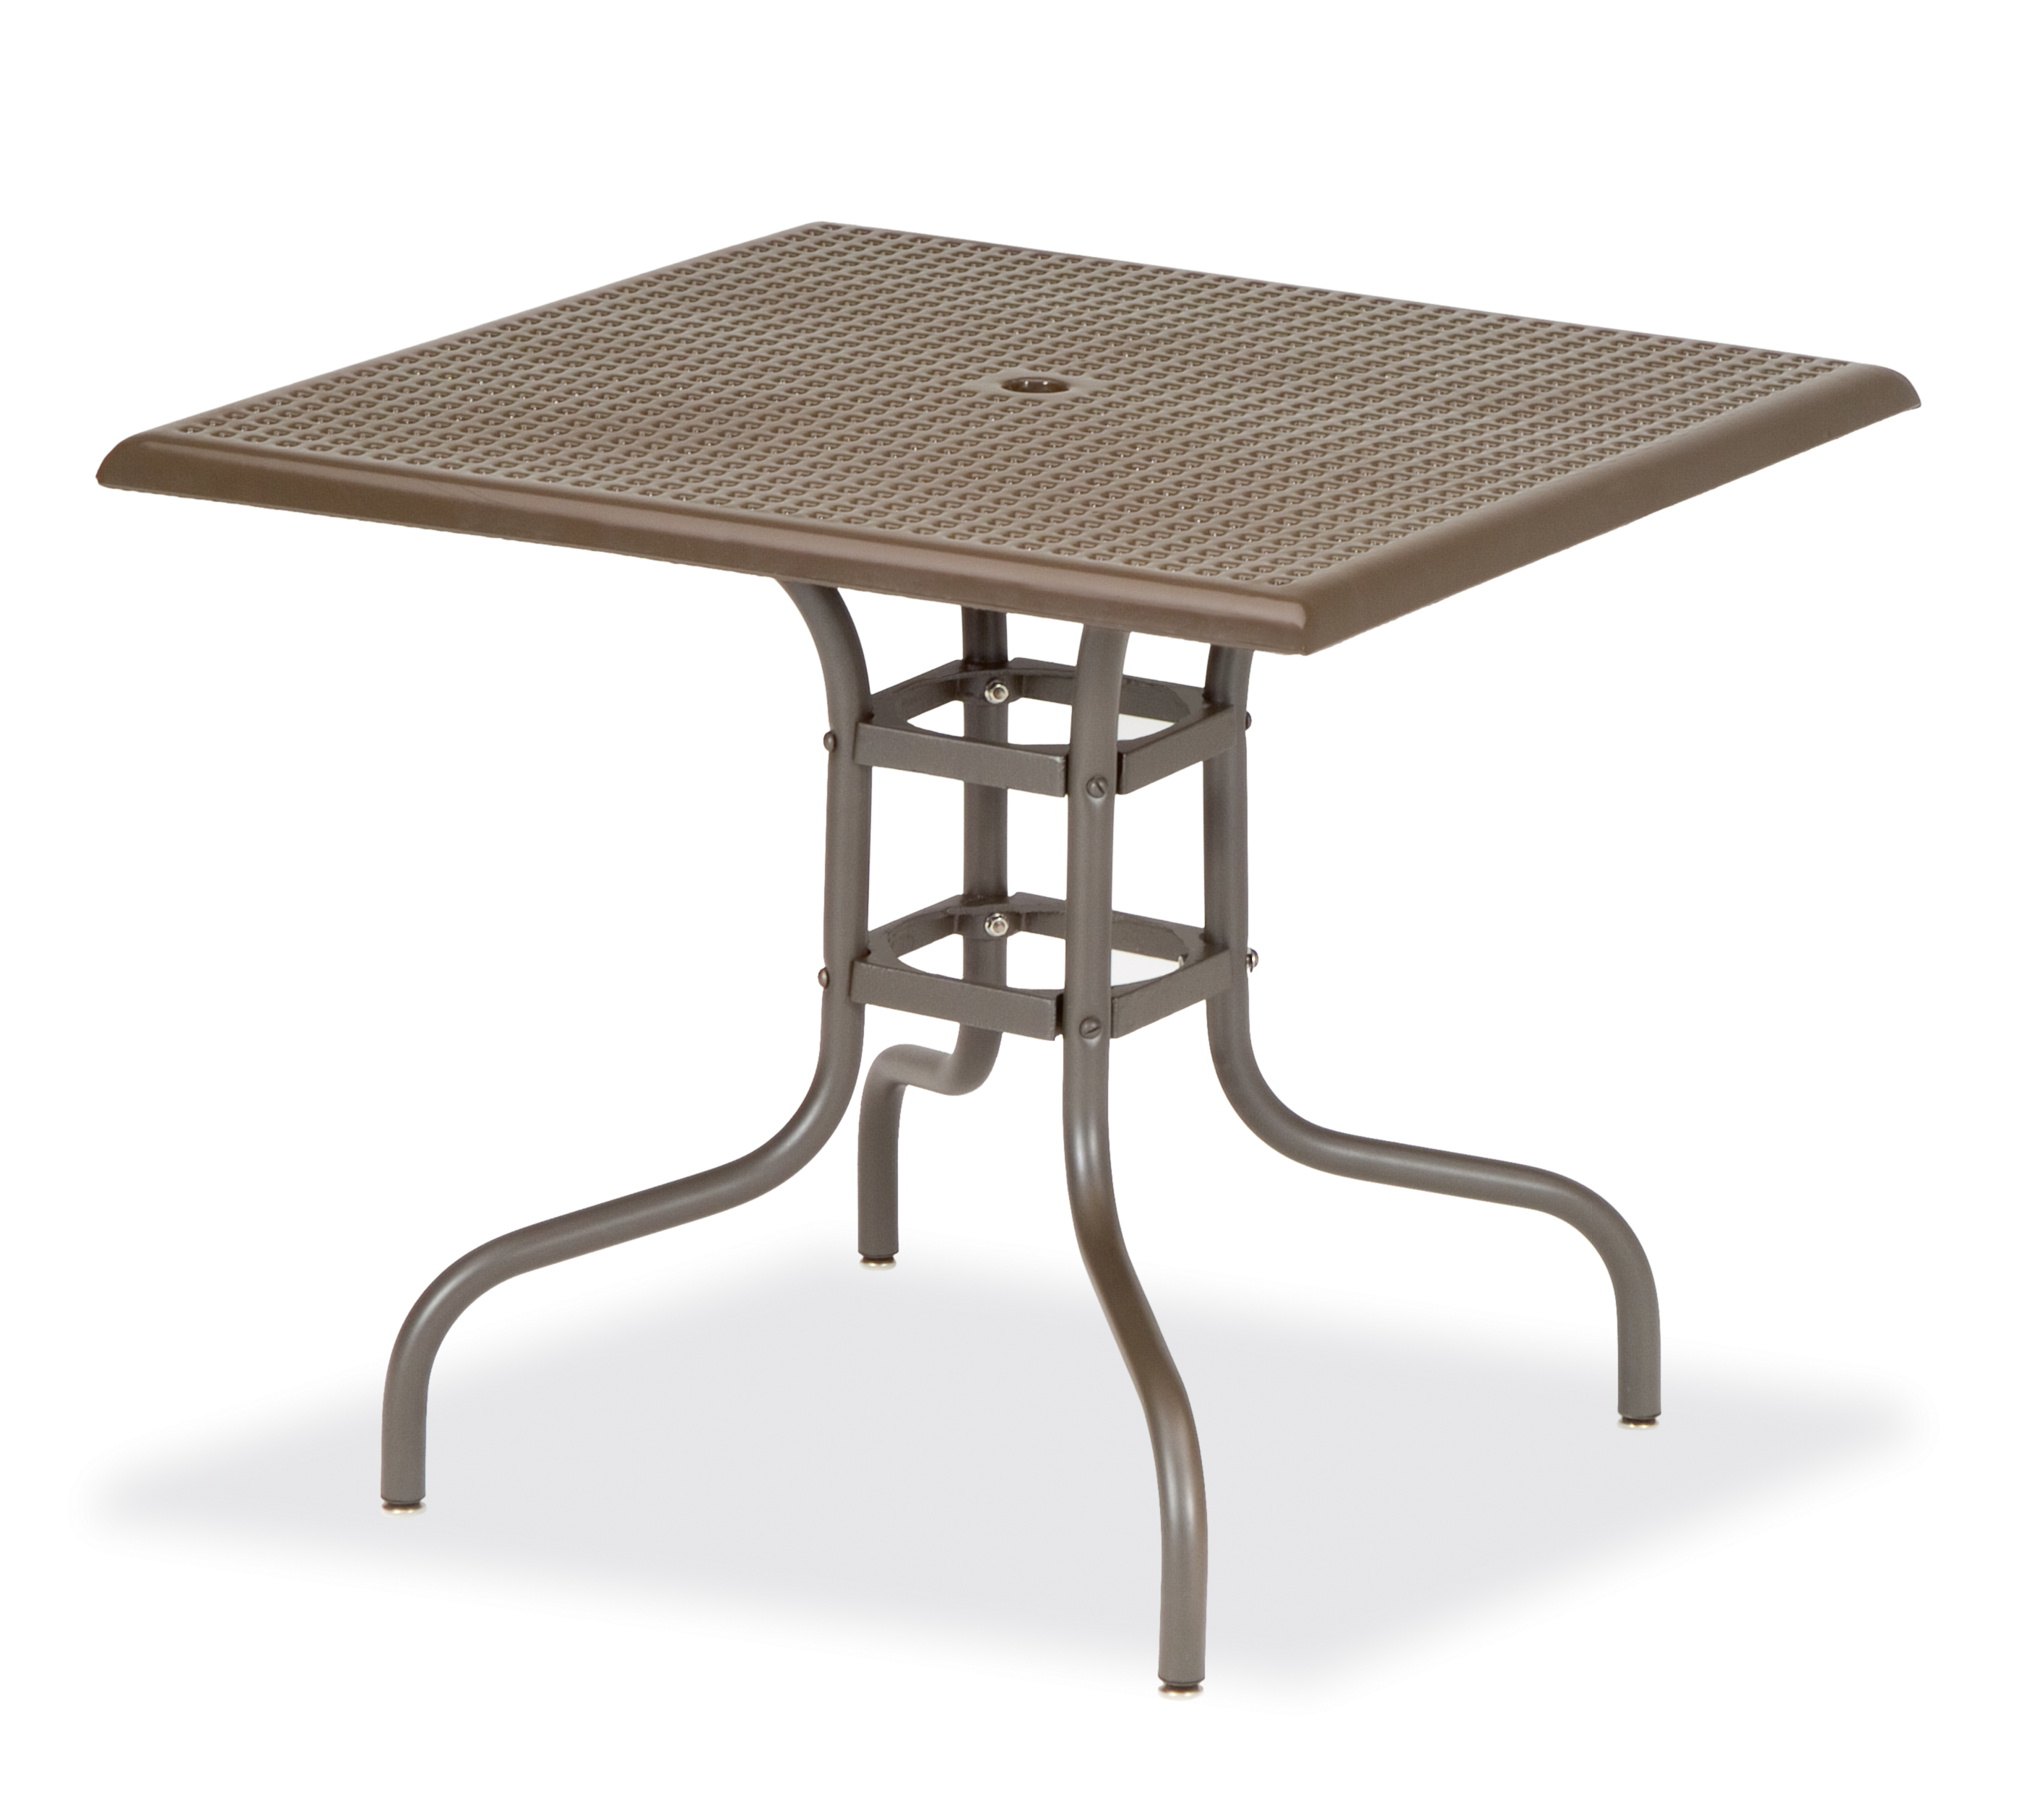 Camino Collection Standard Square Cafe Table